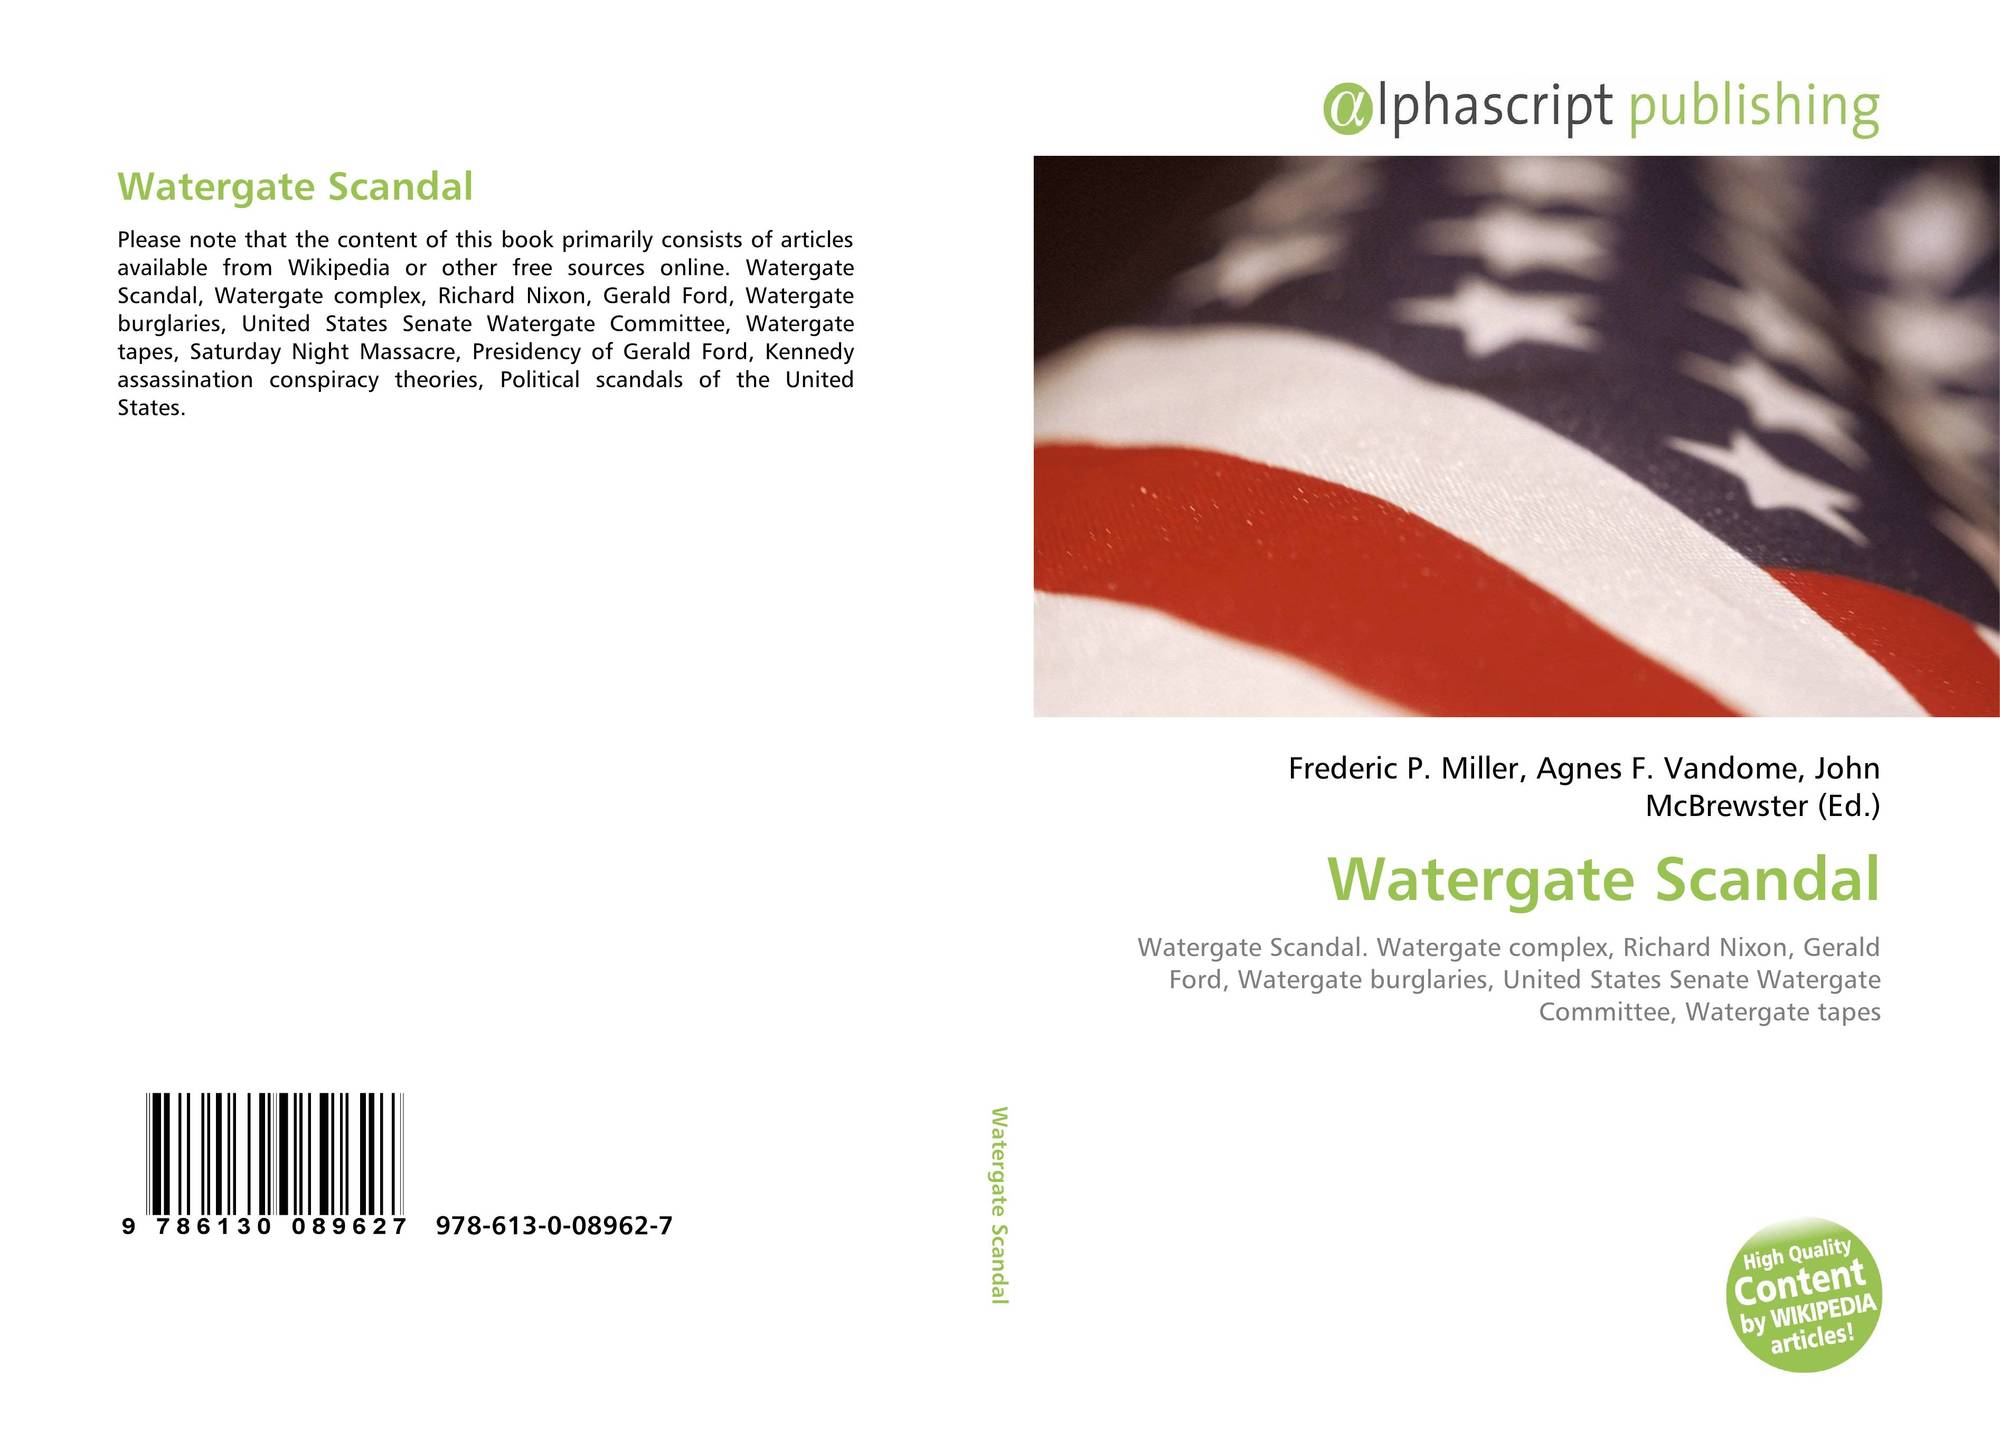 an introduction to the watergate scandal in the united states The watergate scandal essay examples 2129 words | 9 pages the watergate scandal introduction watergate was the name of the biggest political scandal in united states history.